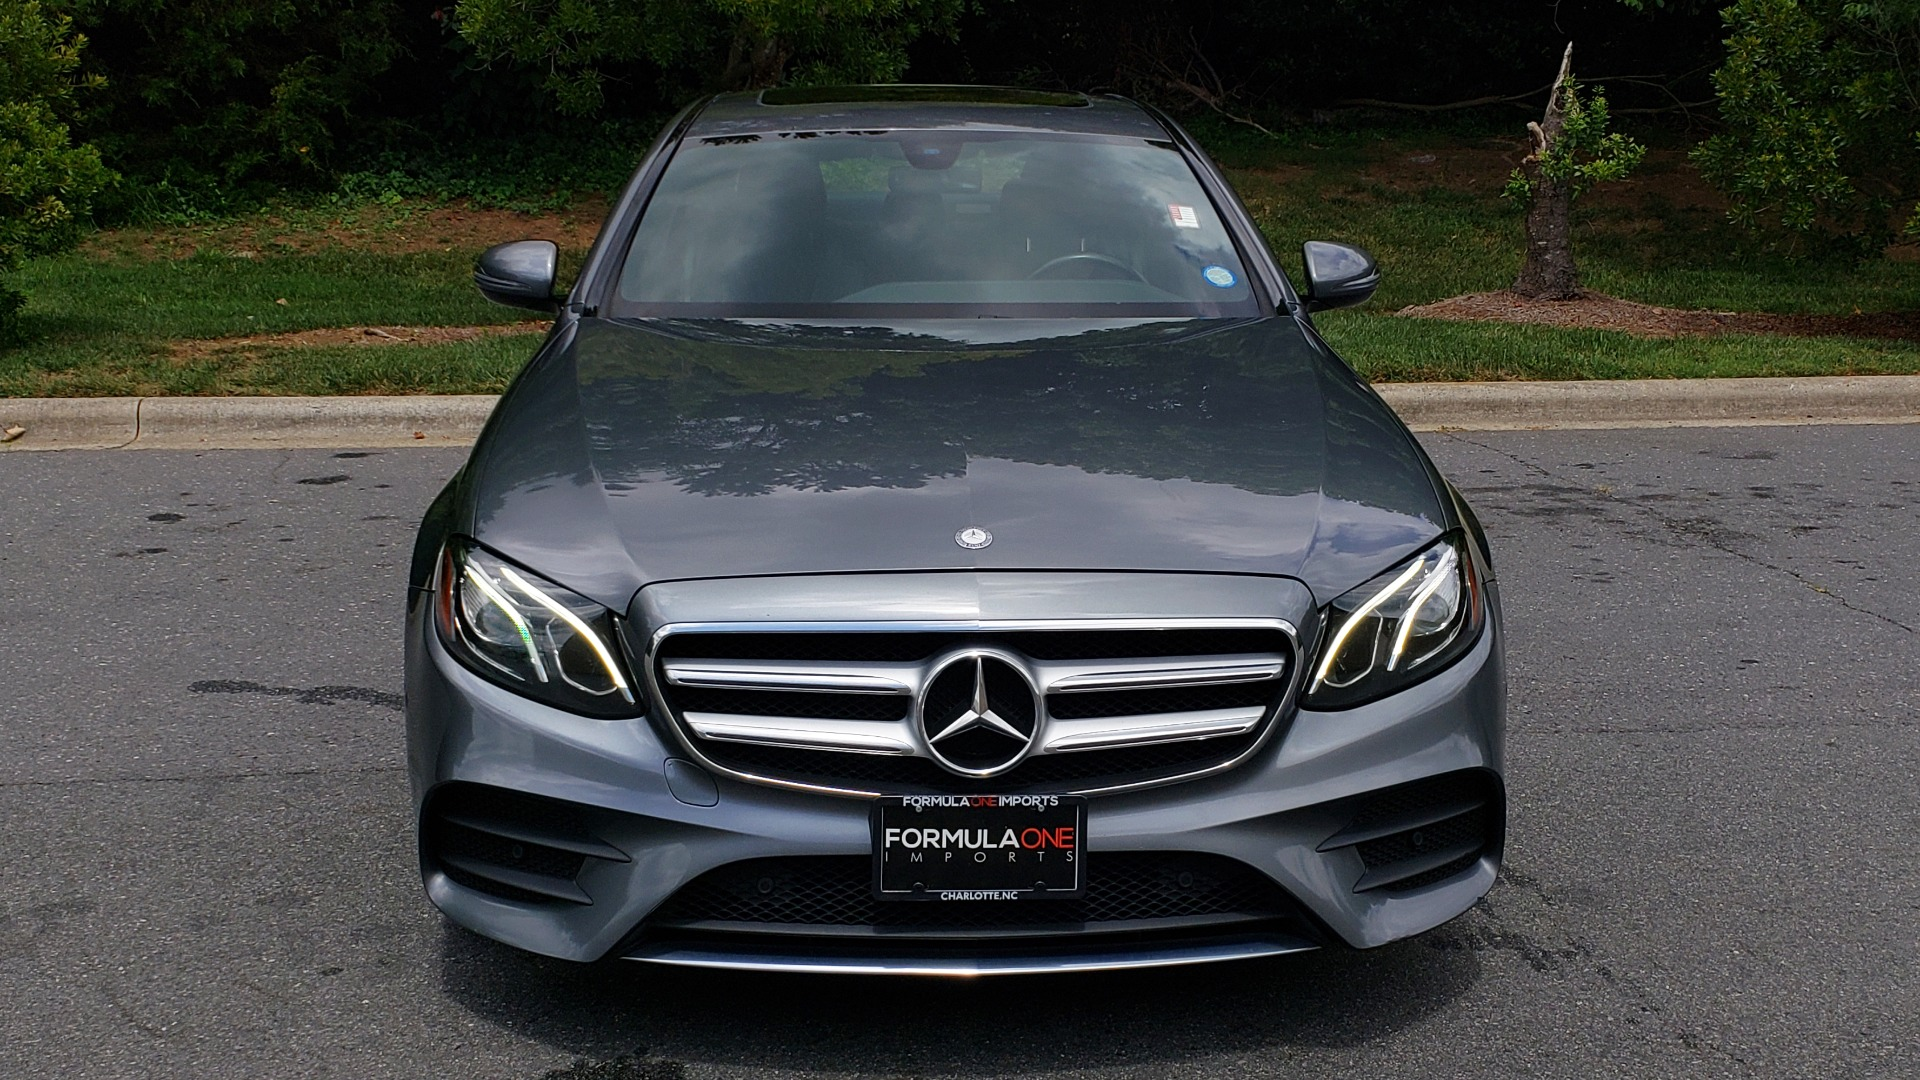 Used 2017 Mercedes-Benz E-CLASS E 300 SPORT 4MATIC / PREM PKG / NAV / SUNROOF / BURMESTER SND / REARVIEW for sale Sold at Formula Imports in Charlotte NC 28227 15